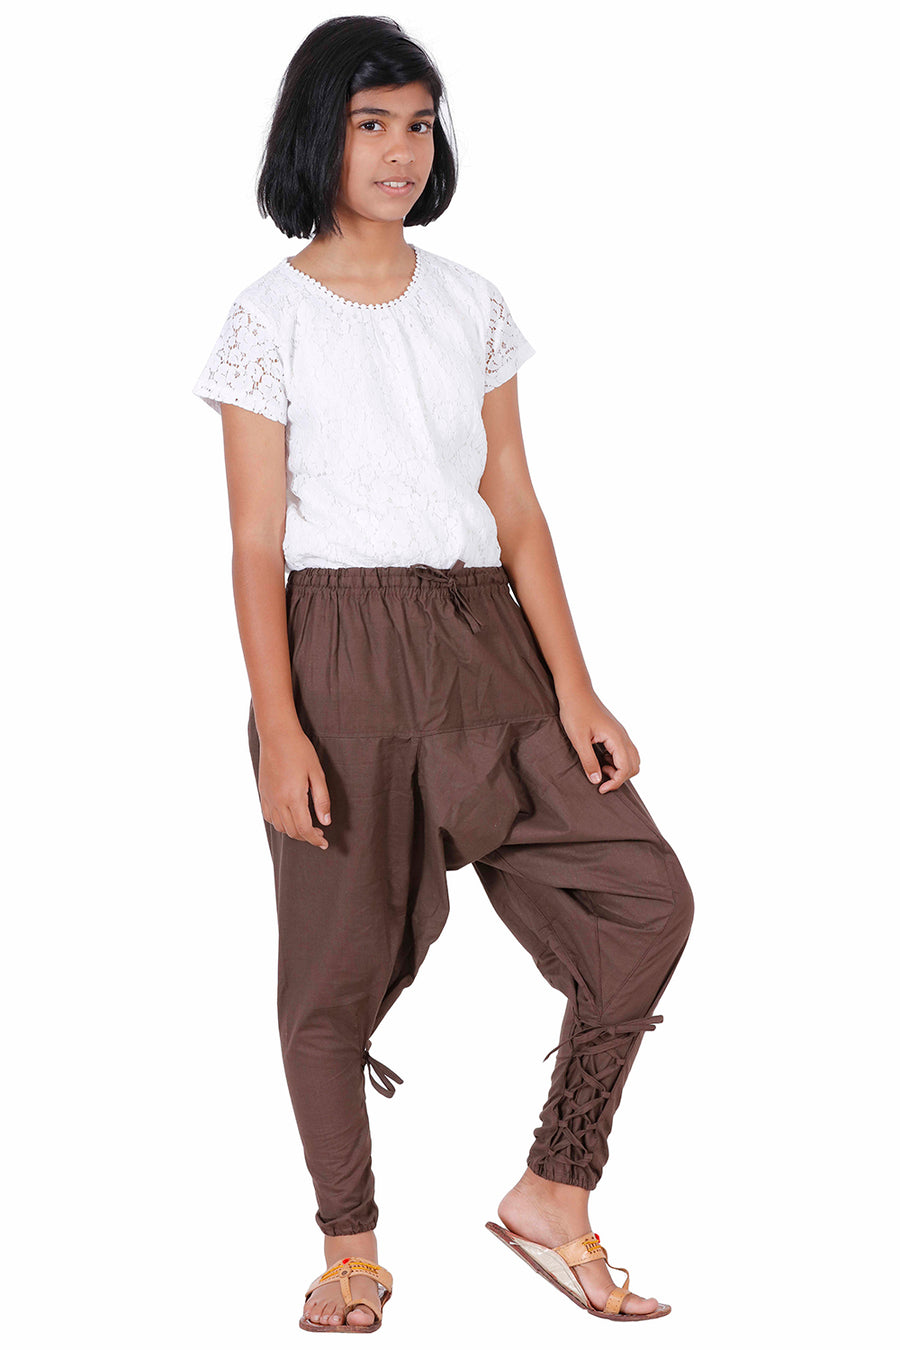 db7e376f9 ... Style Kids Harem Pants, Kids Parachute Pants, Brown Harem Pants for kids,  ...